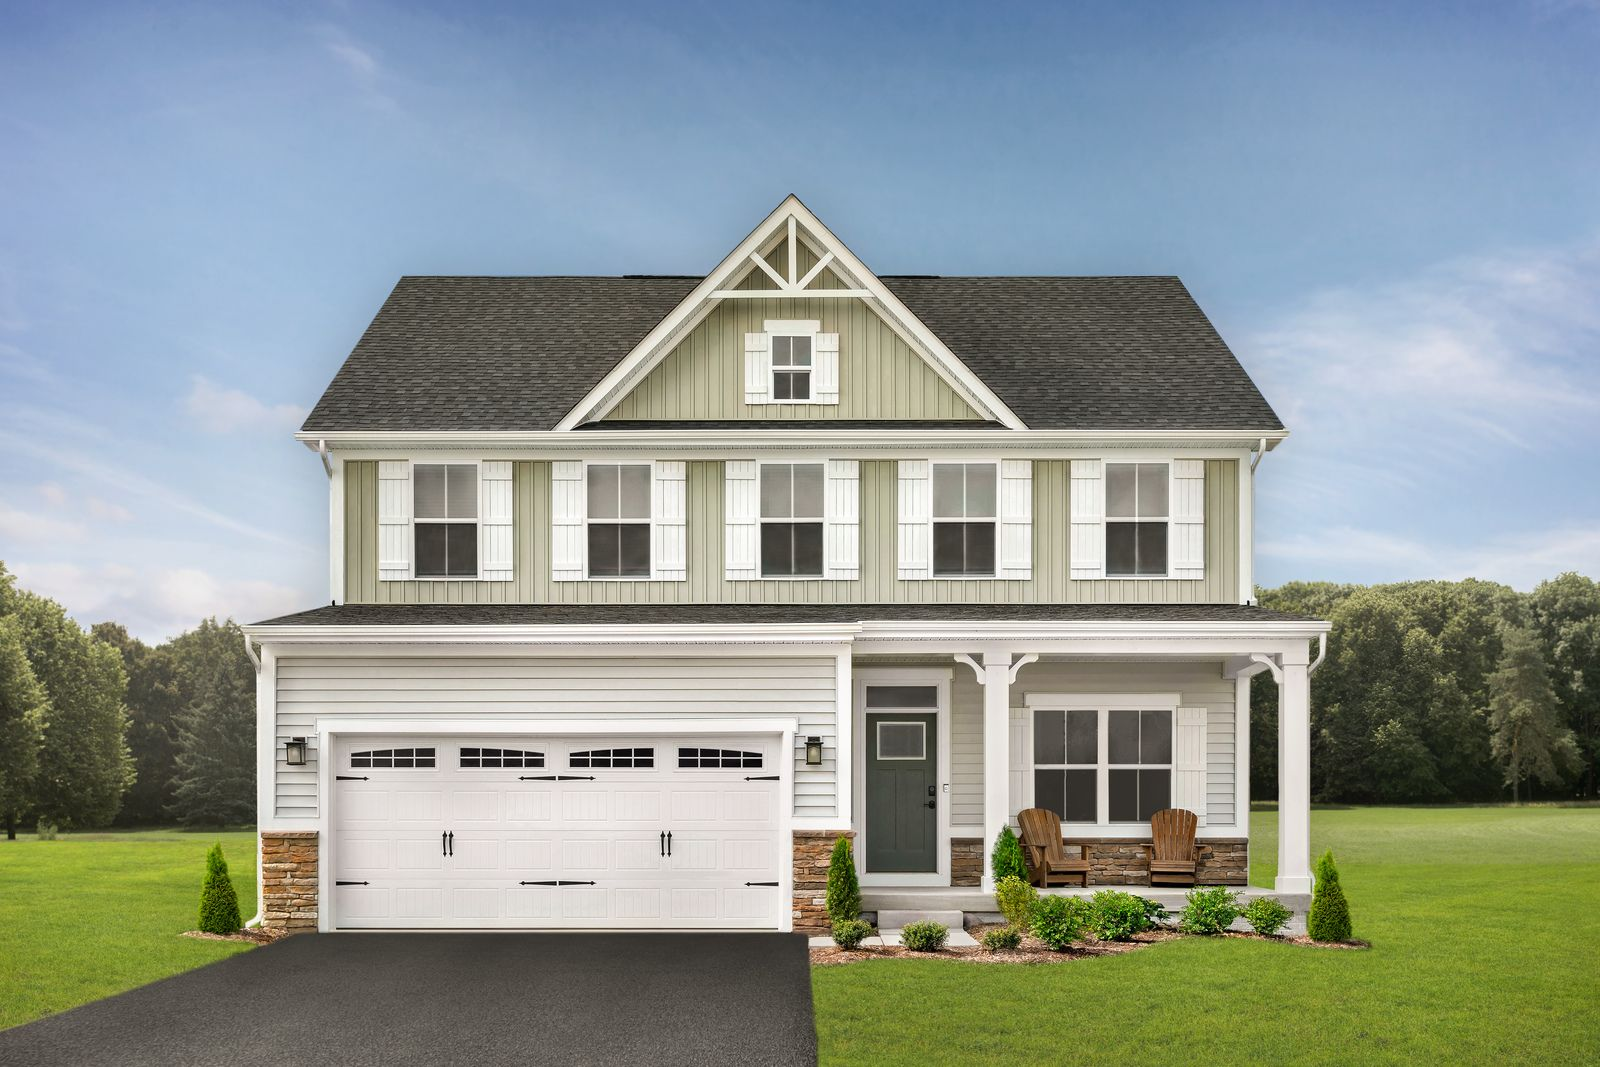 WELCOME TO PATRIOTS WALKE, SUFFOLK'S BEST SELLING COMMUNITY!:Patriot's Walke is Suffolk's Best Selling community. We're down to our last section of homesites. They'll sell fast, so don't miss out!Schedule your visit now & get an extra $500 incentive.